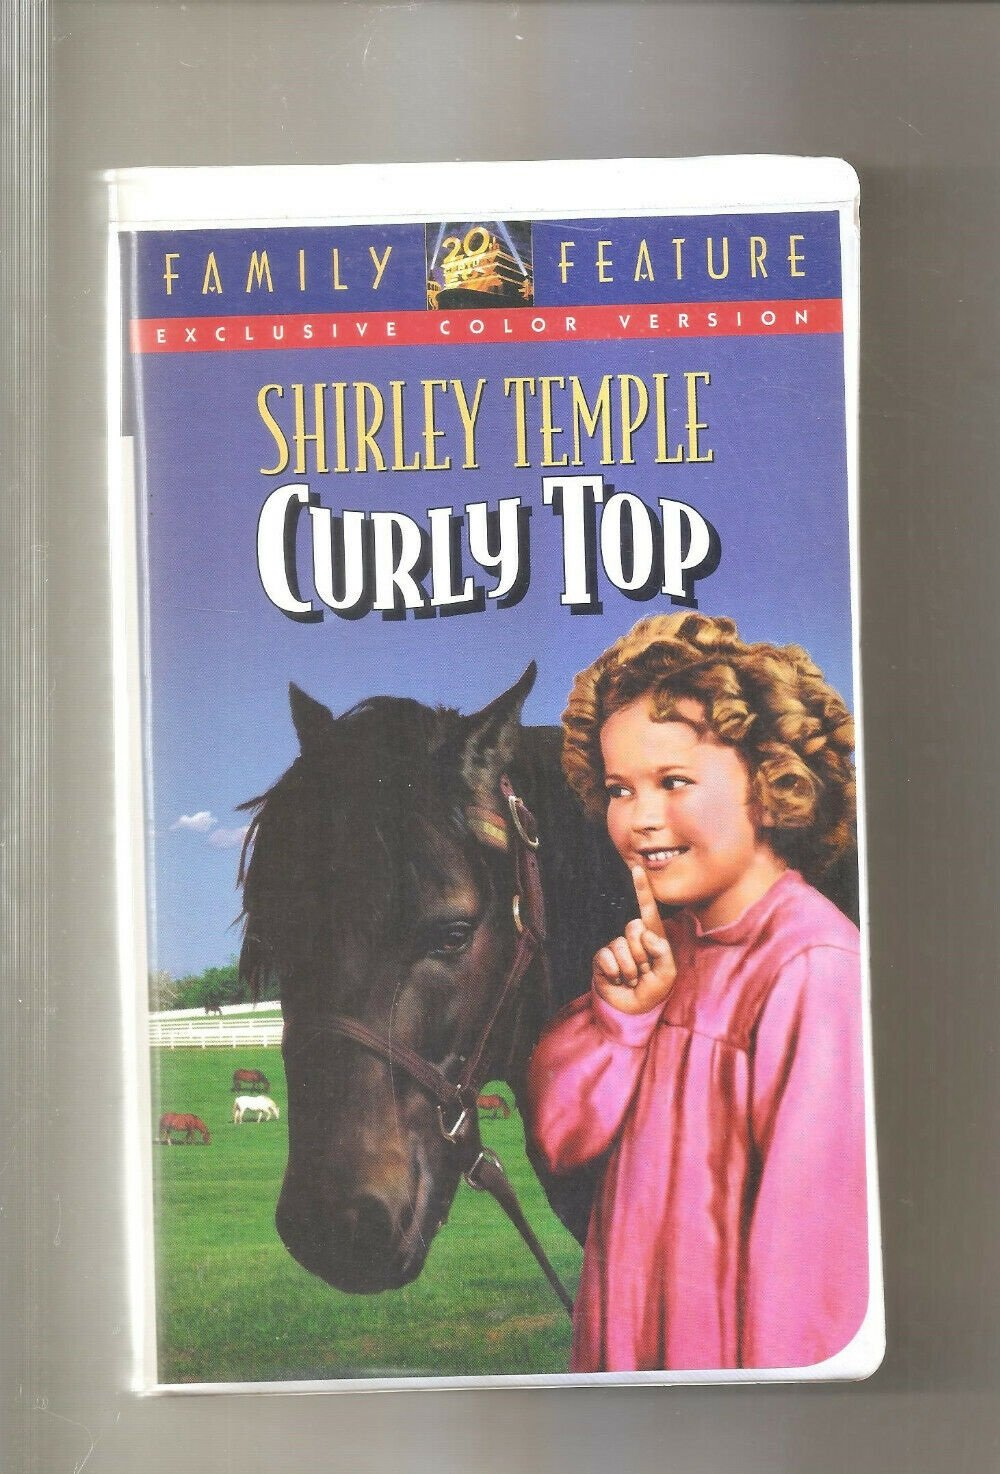 Curly Top (VHS, 1994)